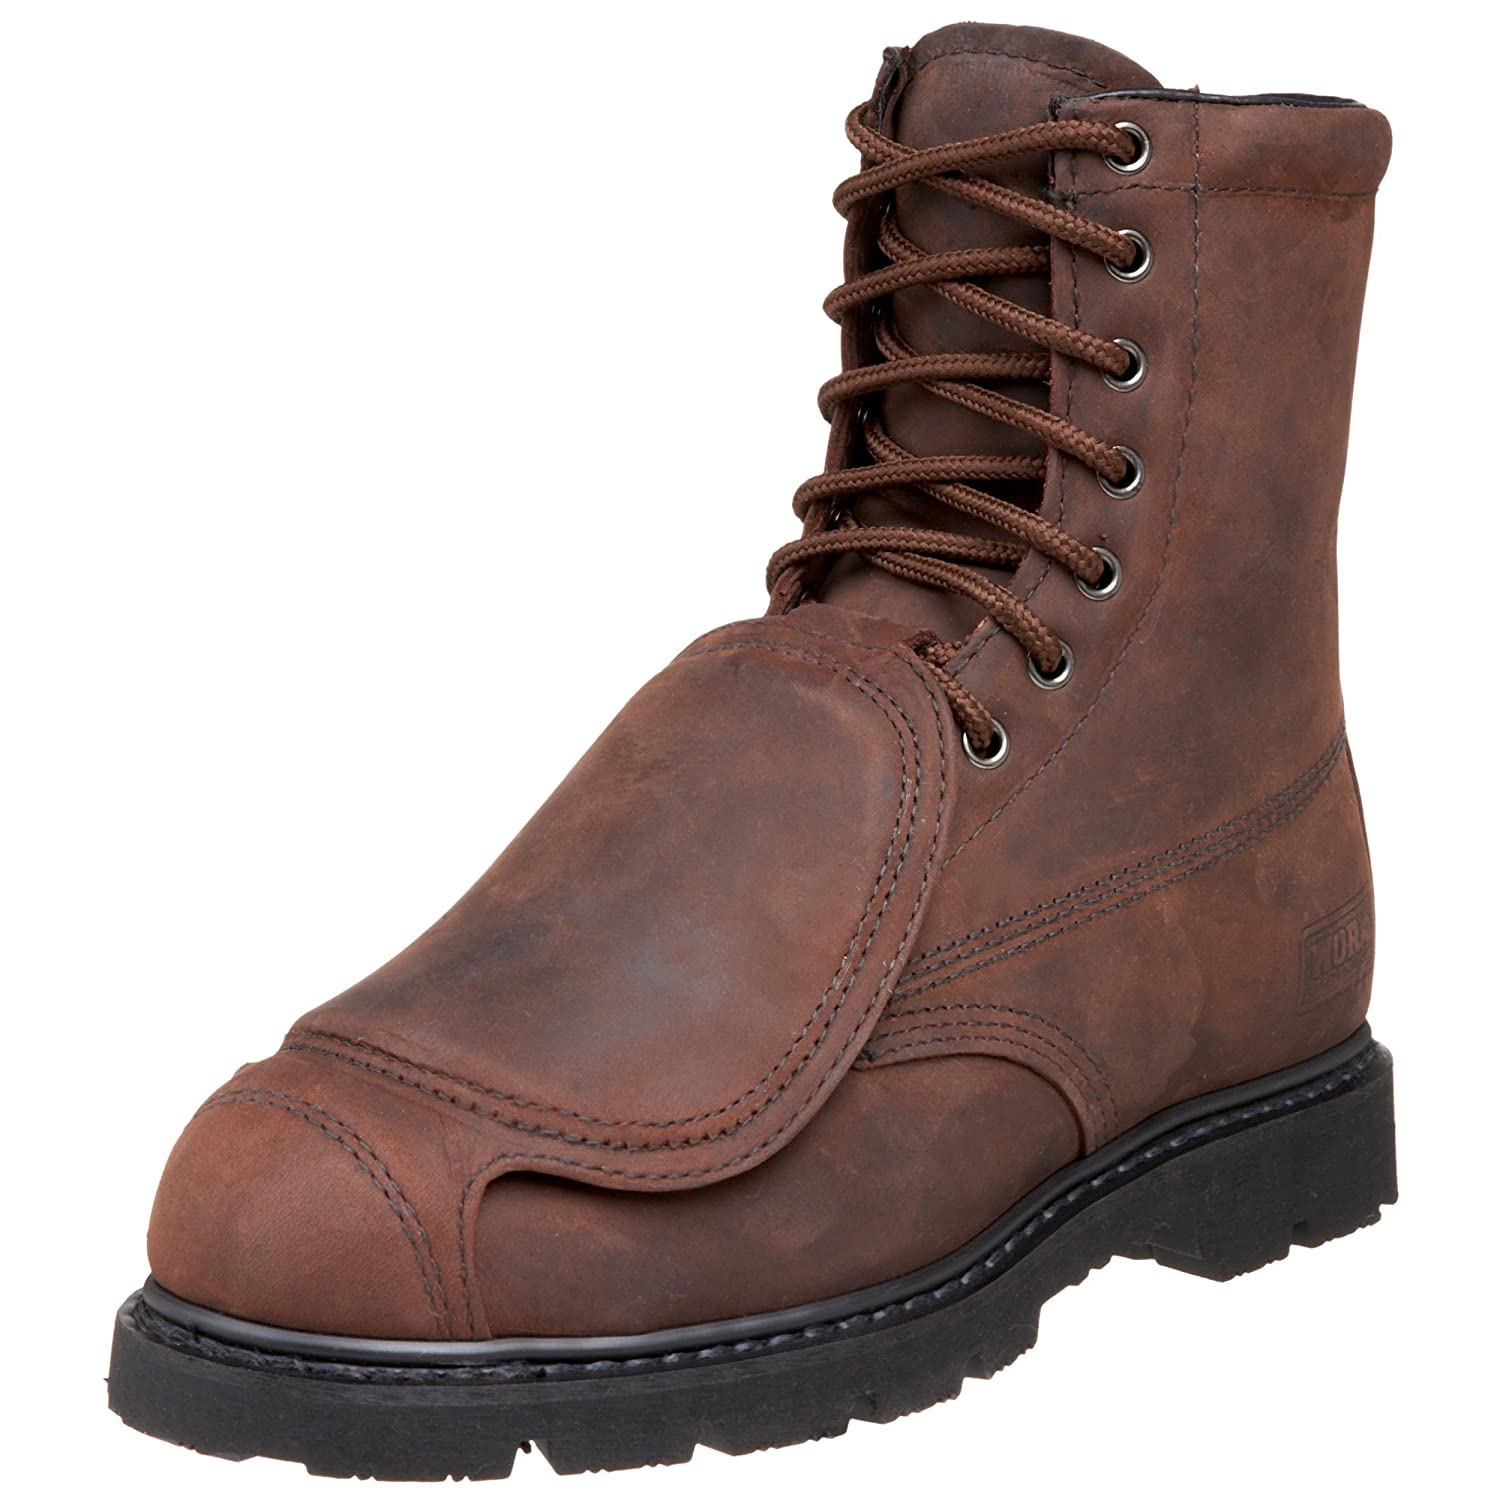 250d5d80546 Amazon.com: WORX by Red Wing Shoes Men's 5489 8